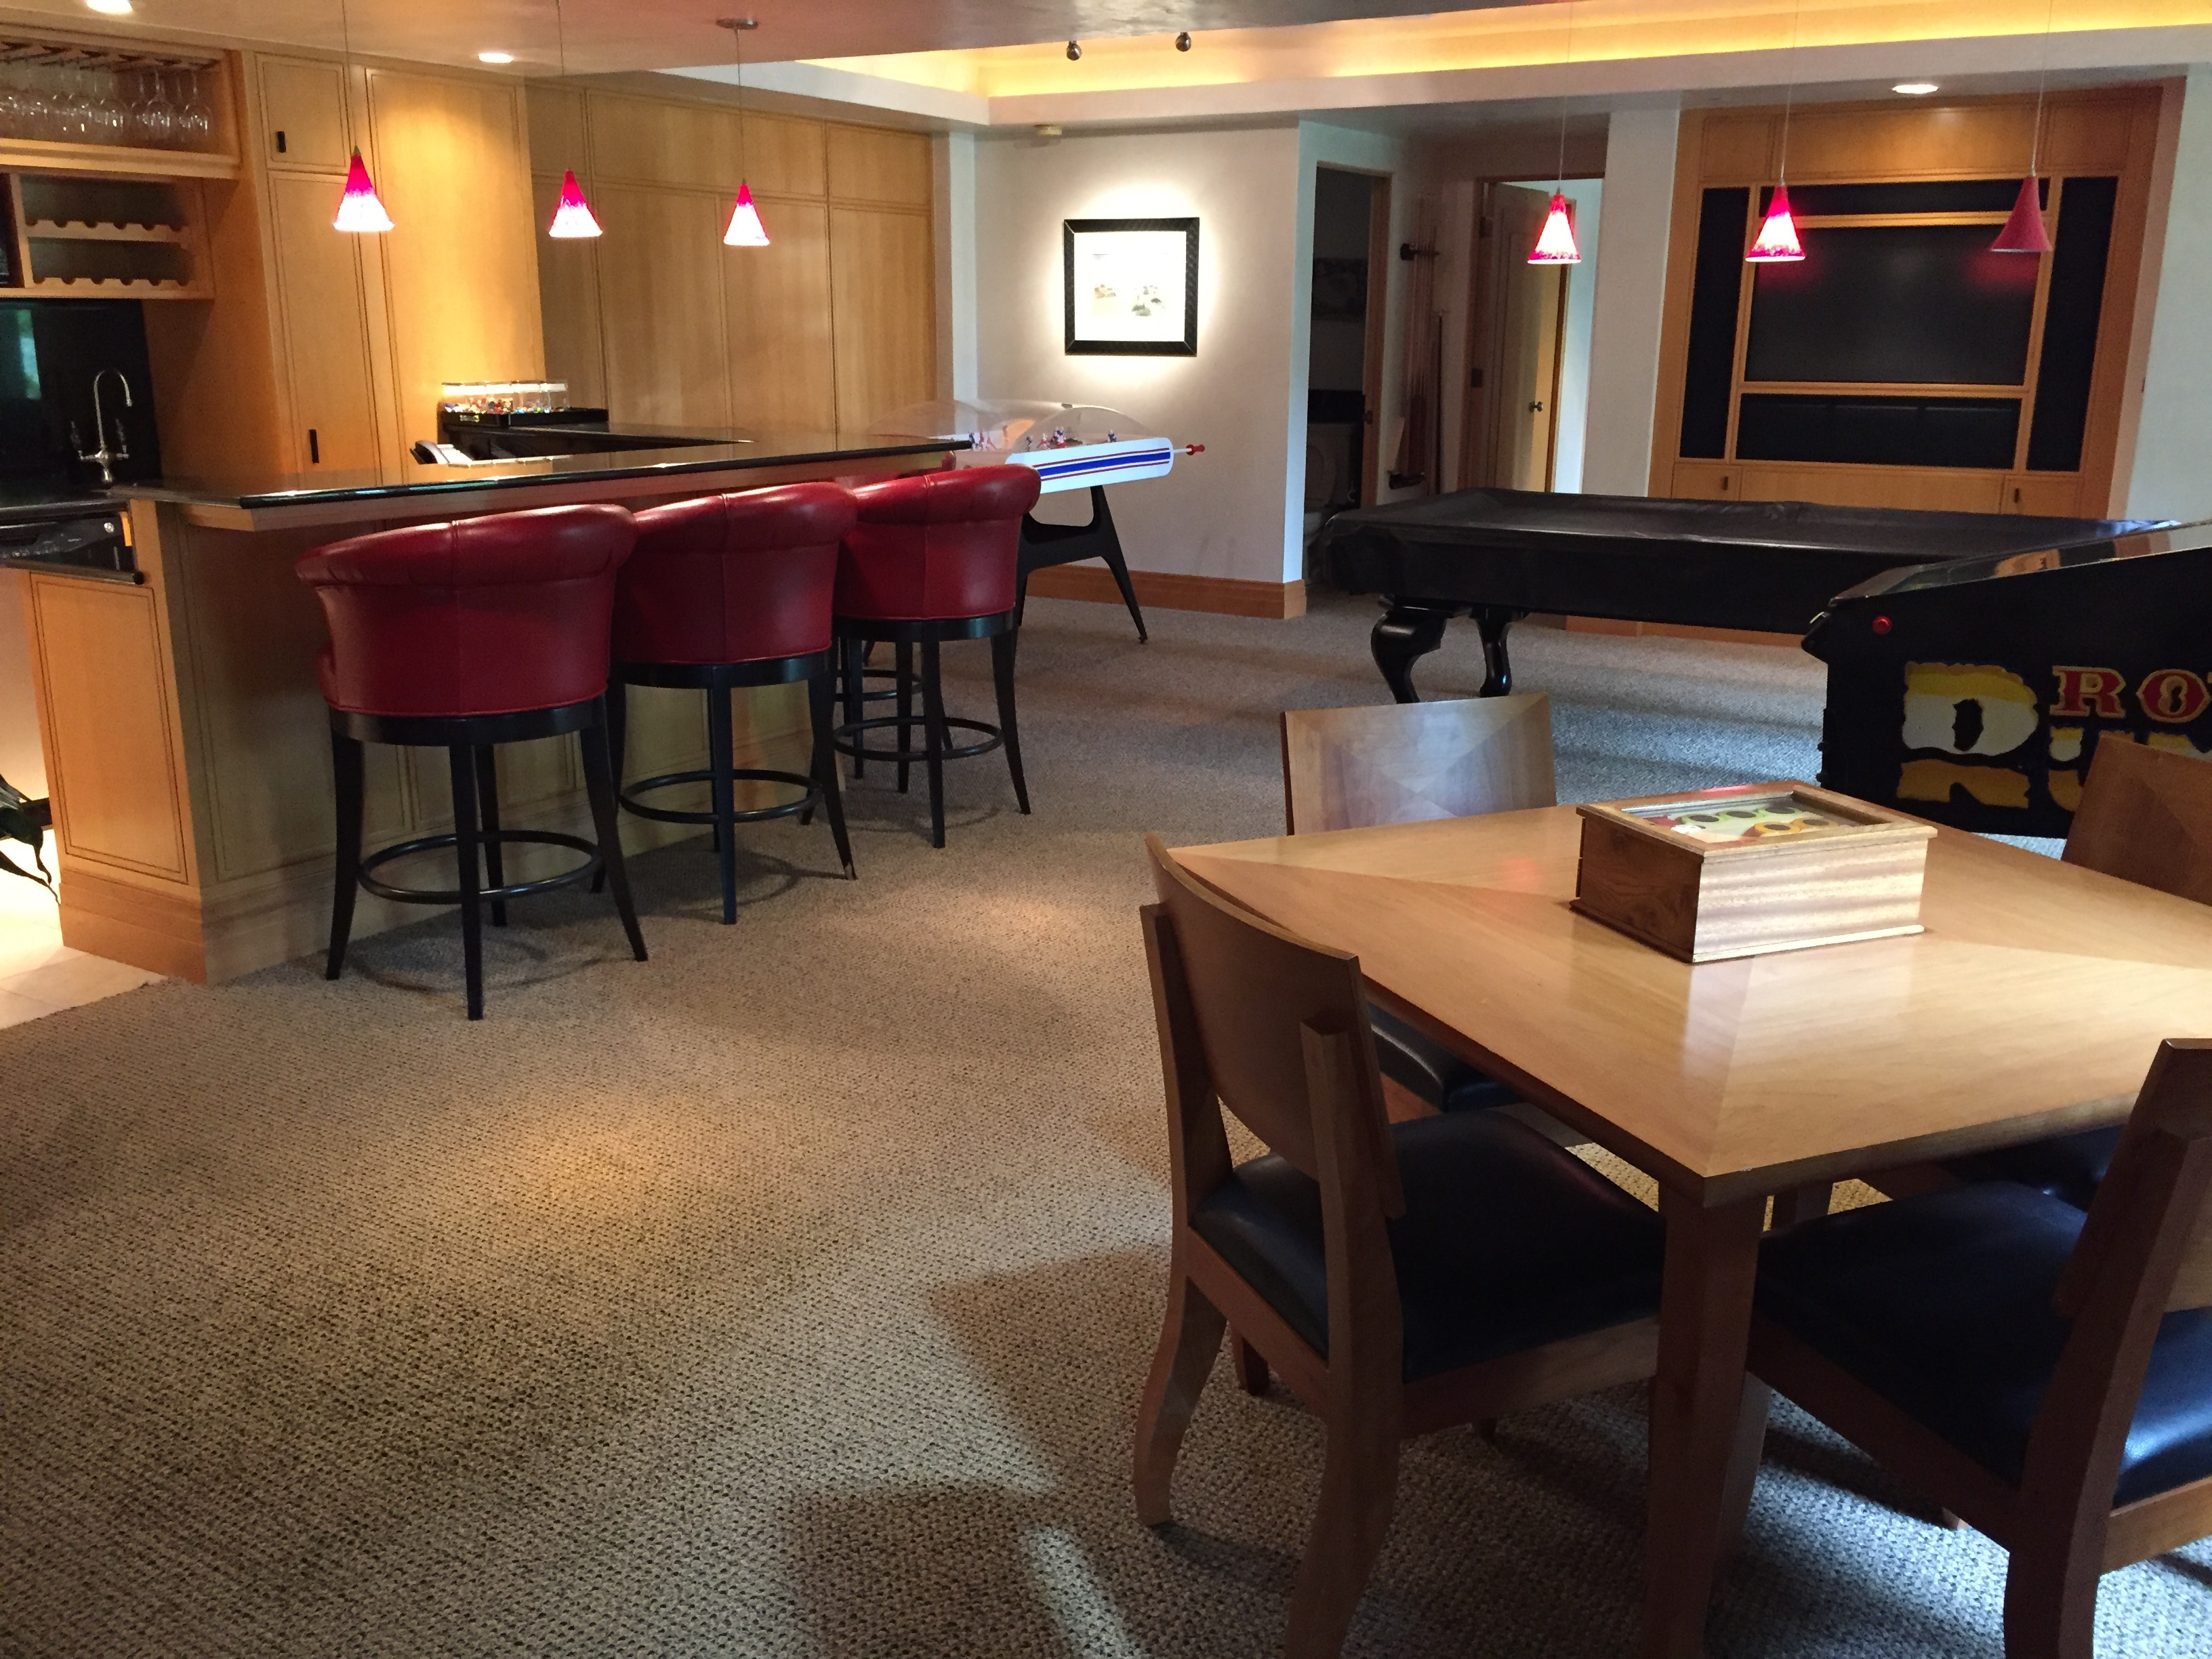 Boulder Best Carpet Cleaning and Janitorial Cleaning